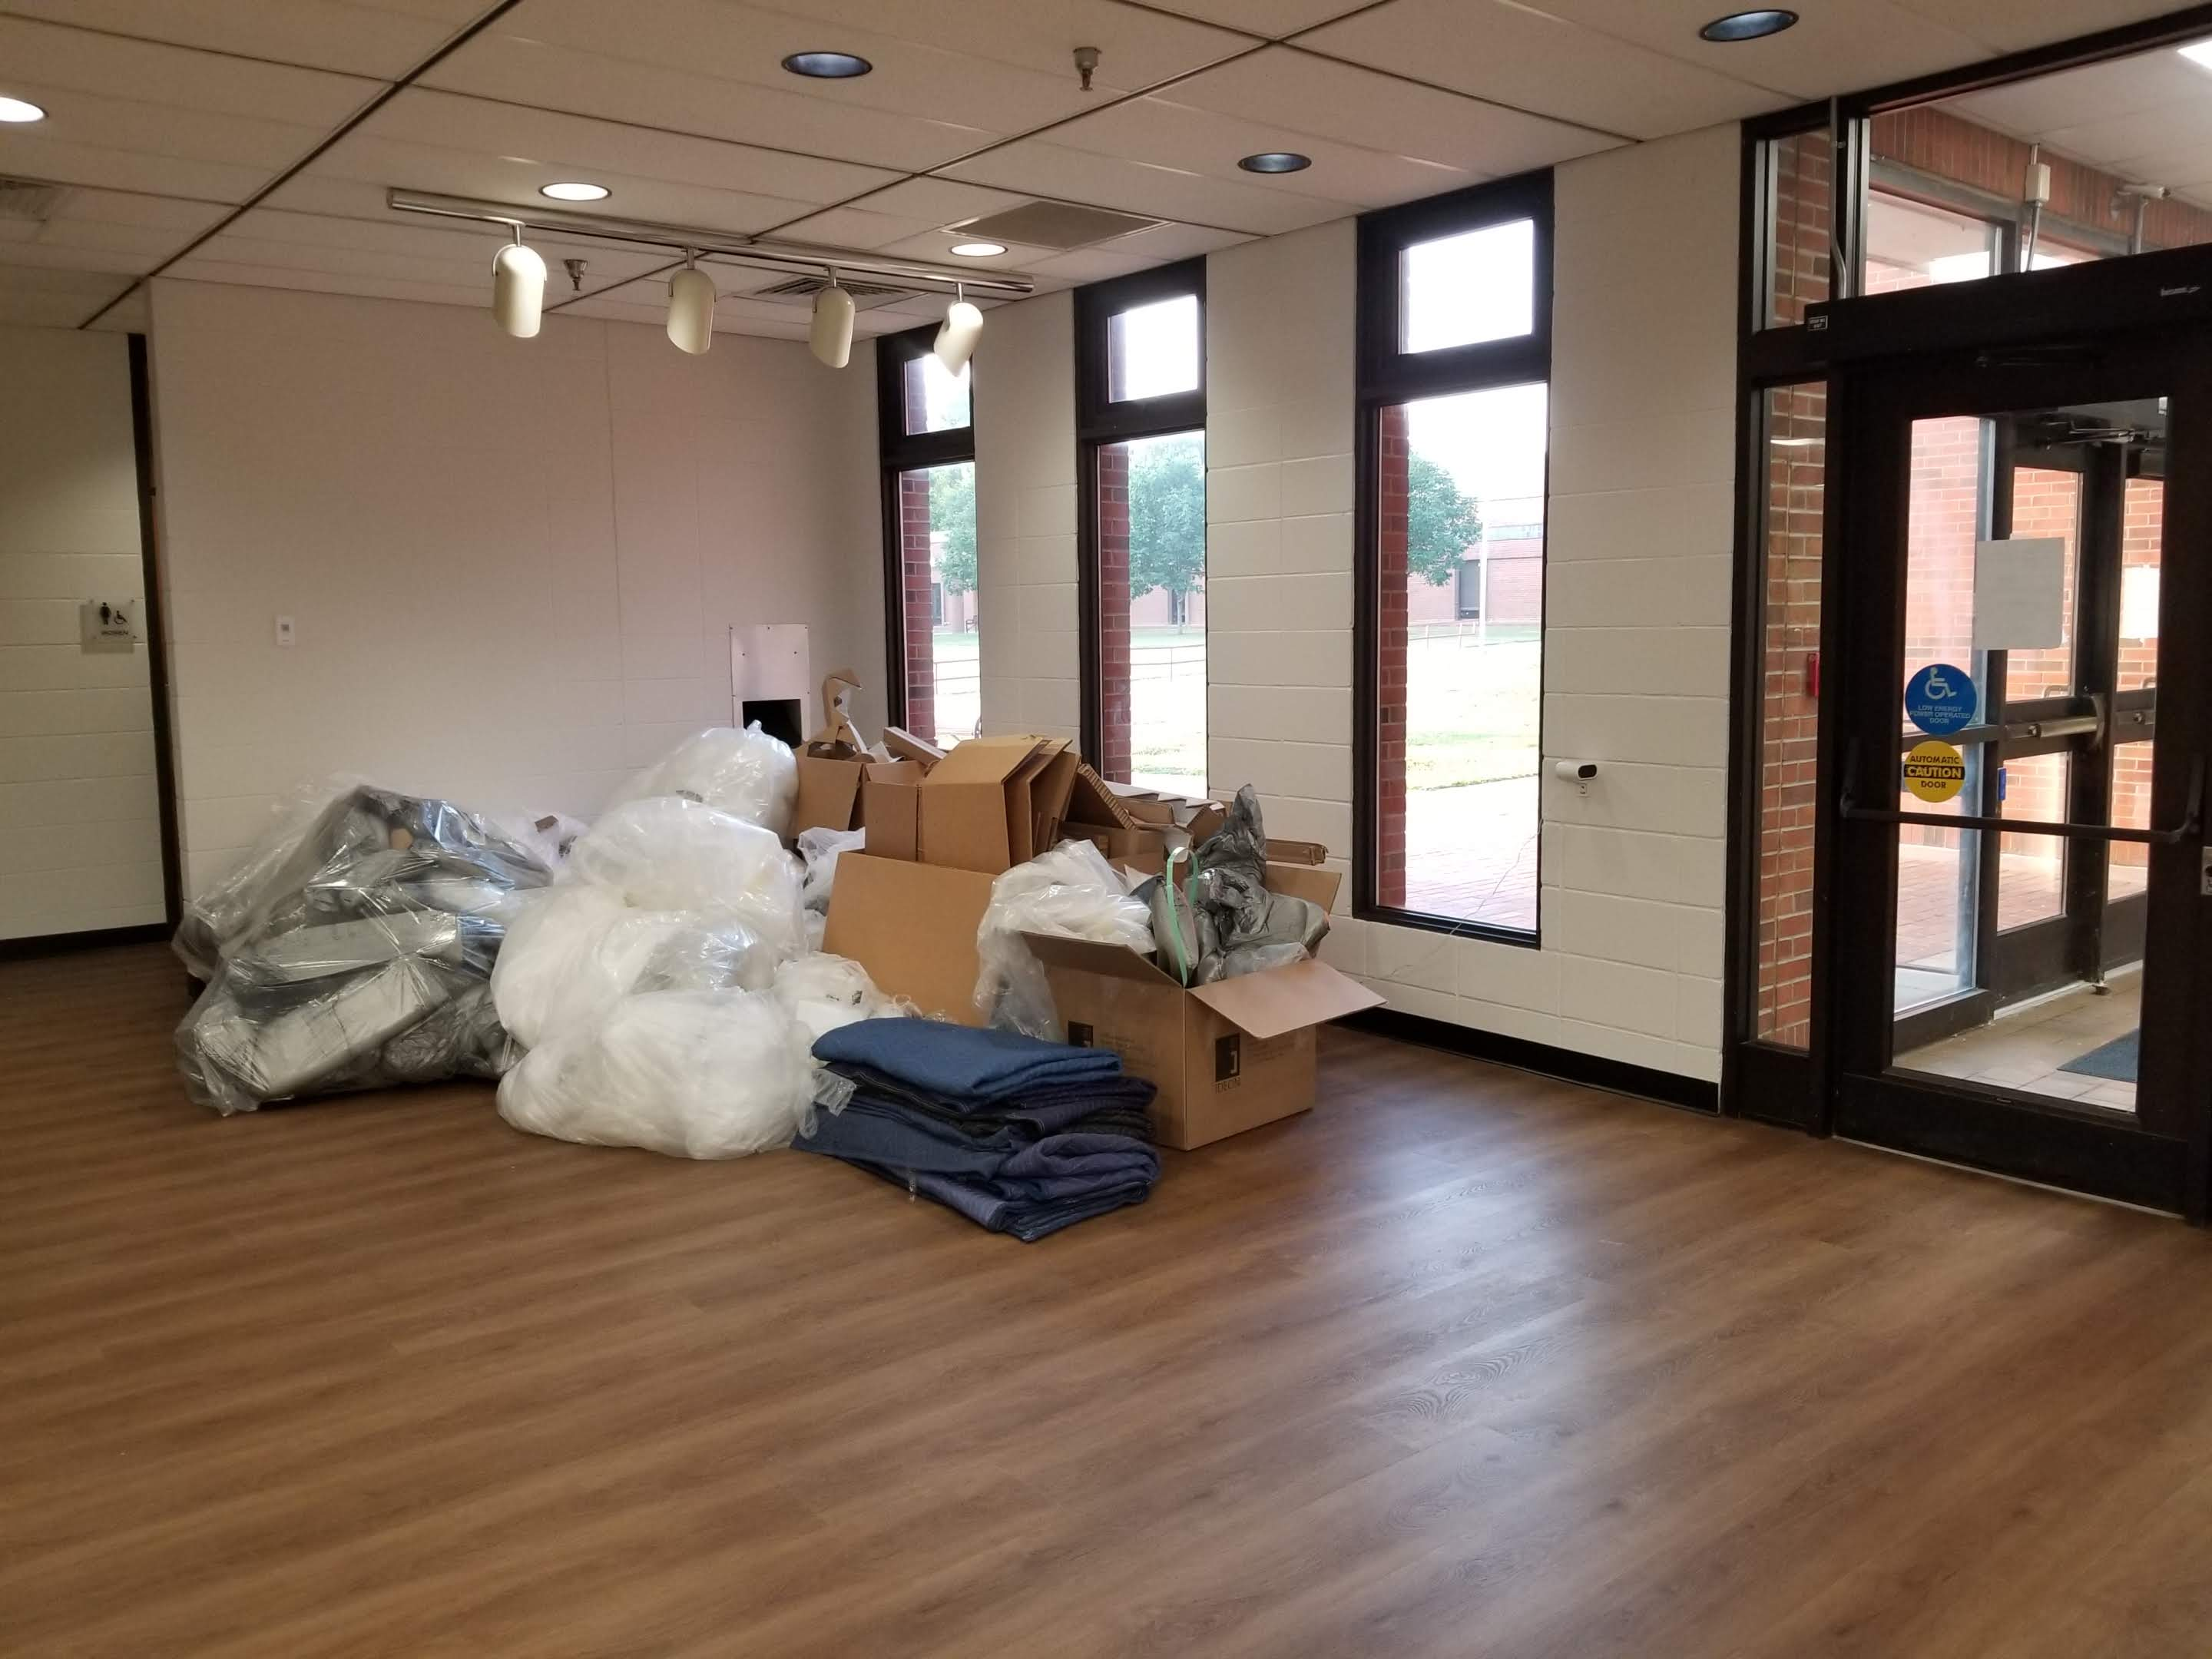 New floor and trash in empty library lobby